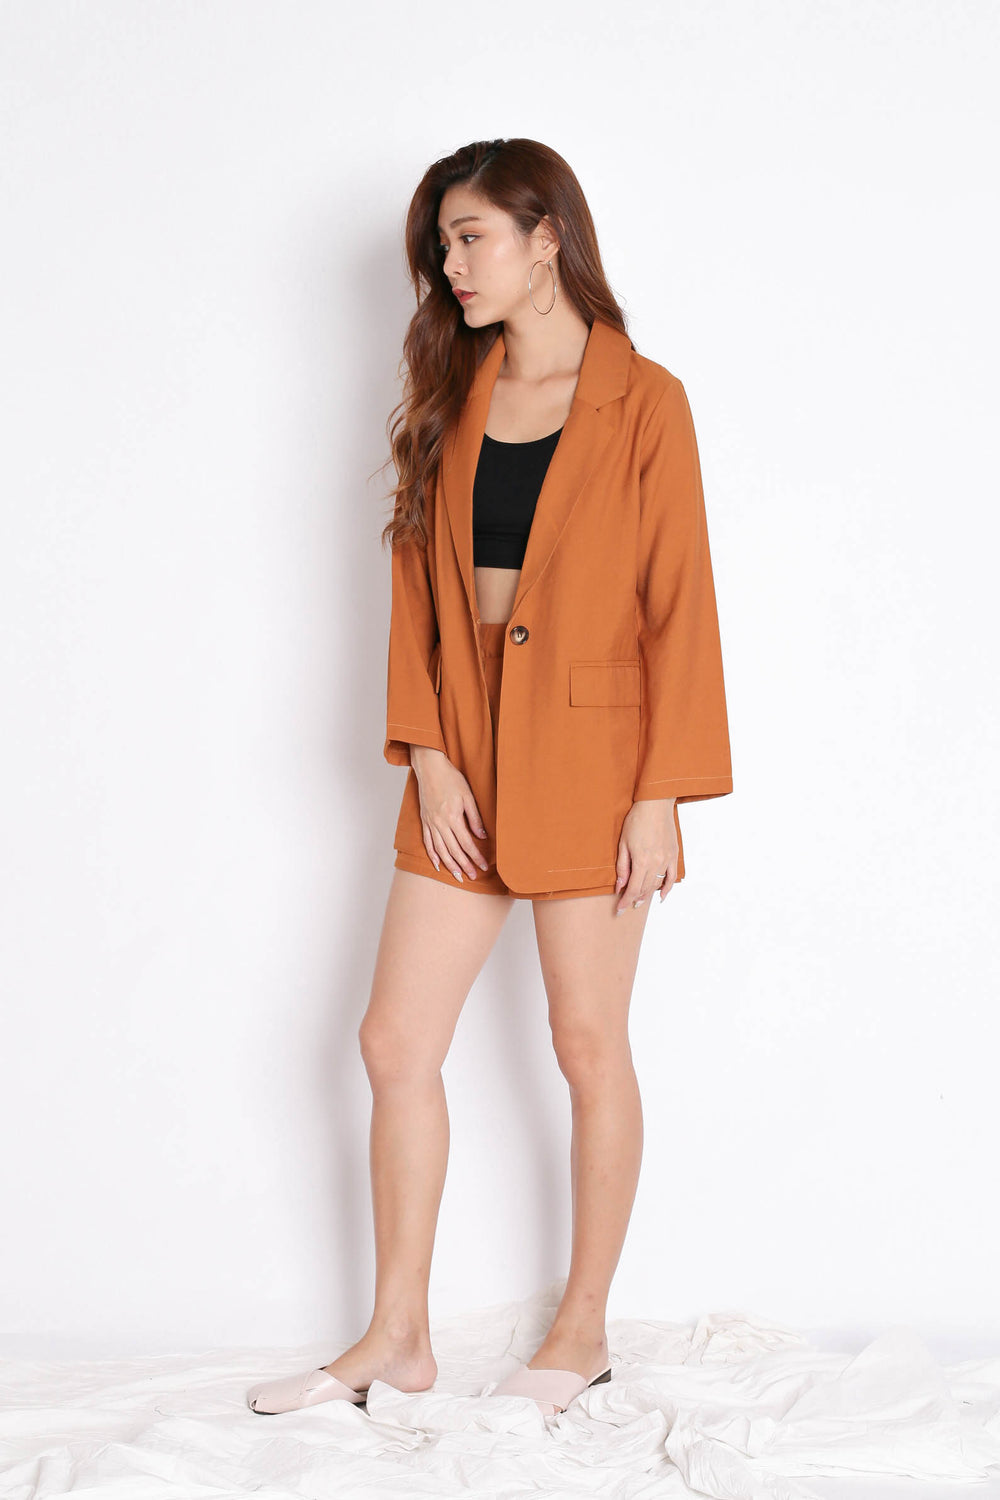 STELLIZ BLAZER AND SHORTS SET IN CAMEL